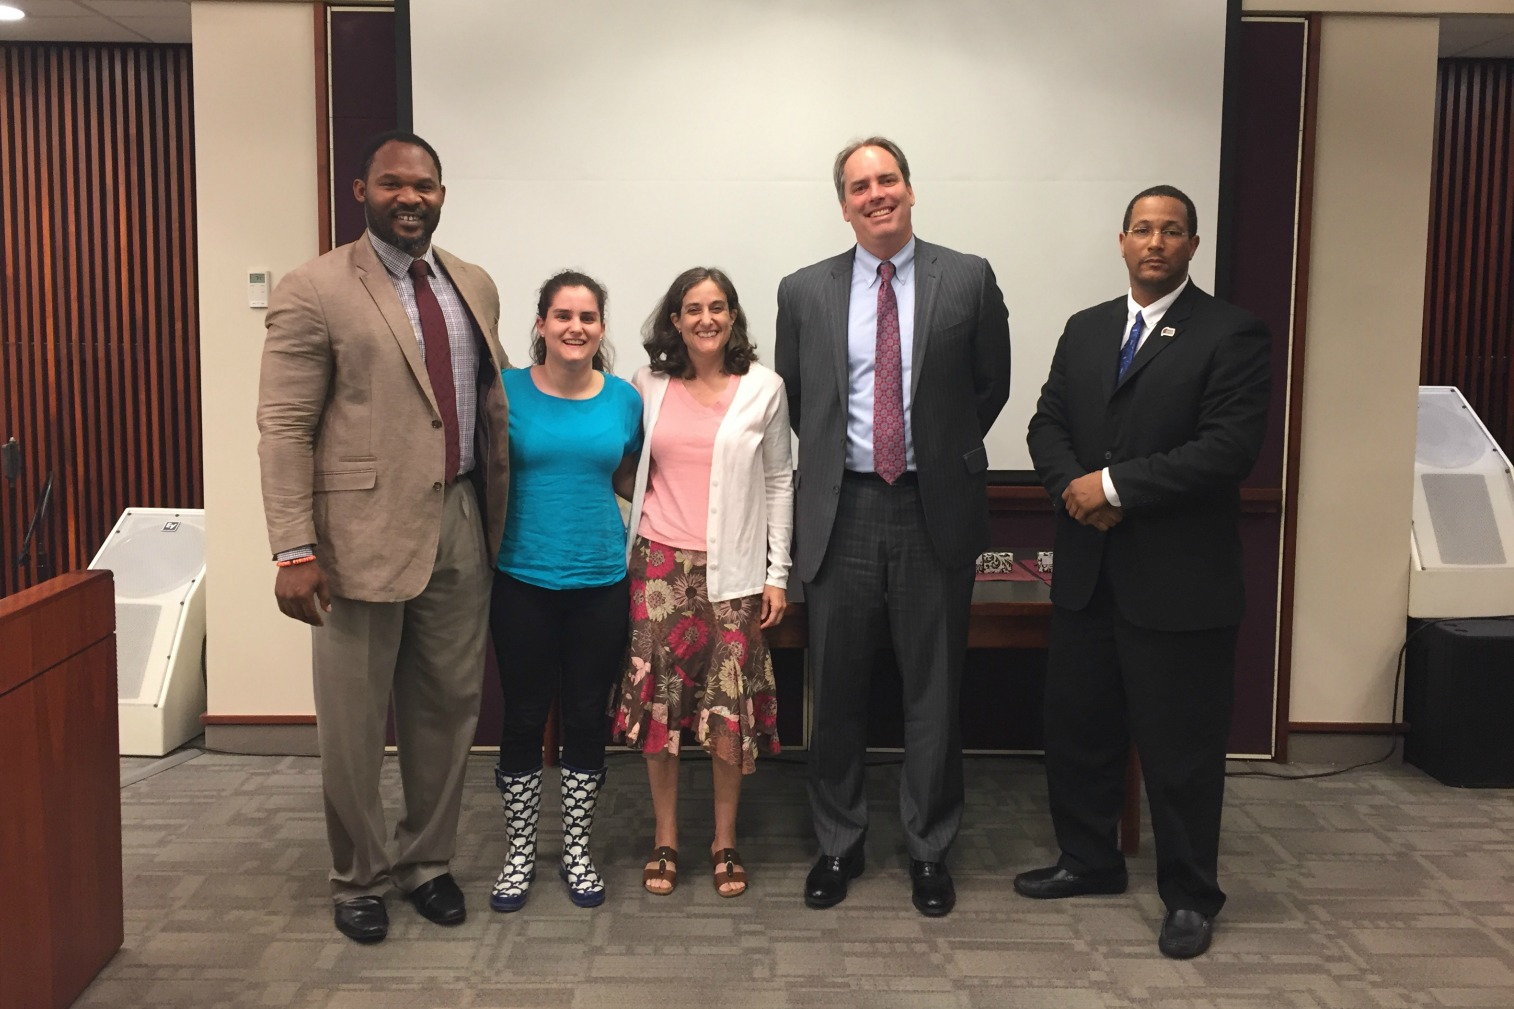 Board of Education Meeting Recognitions 5.15.18